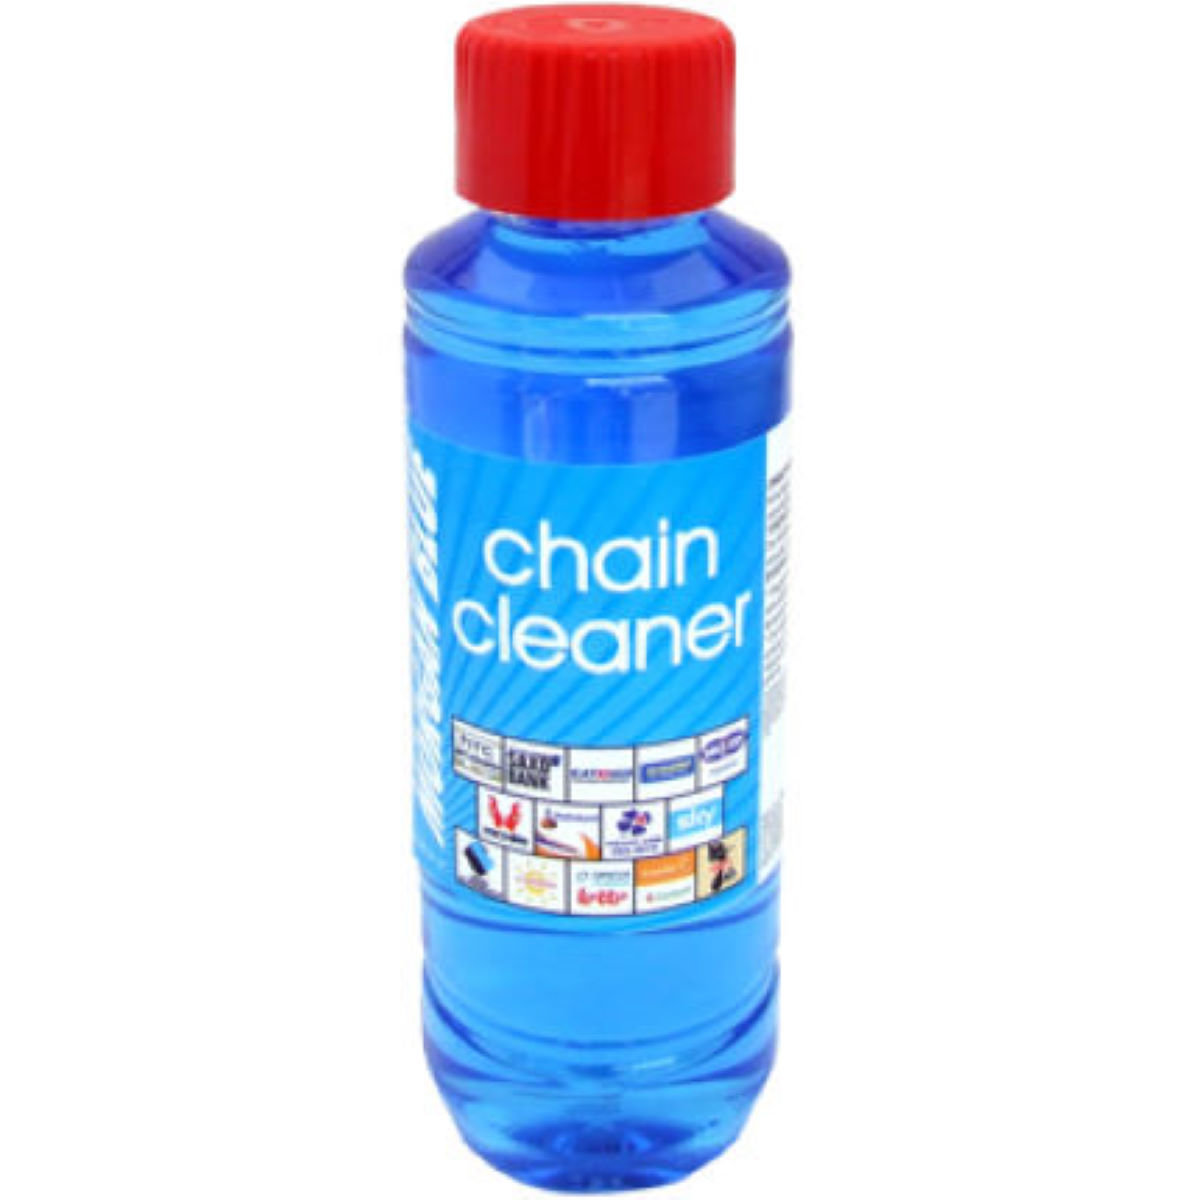 Morgan Blue Chain Cleaner - 250ml Bottle - 250ml  Cleaning Products